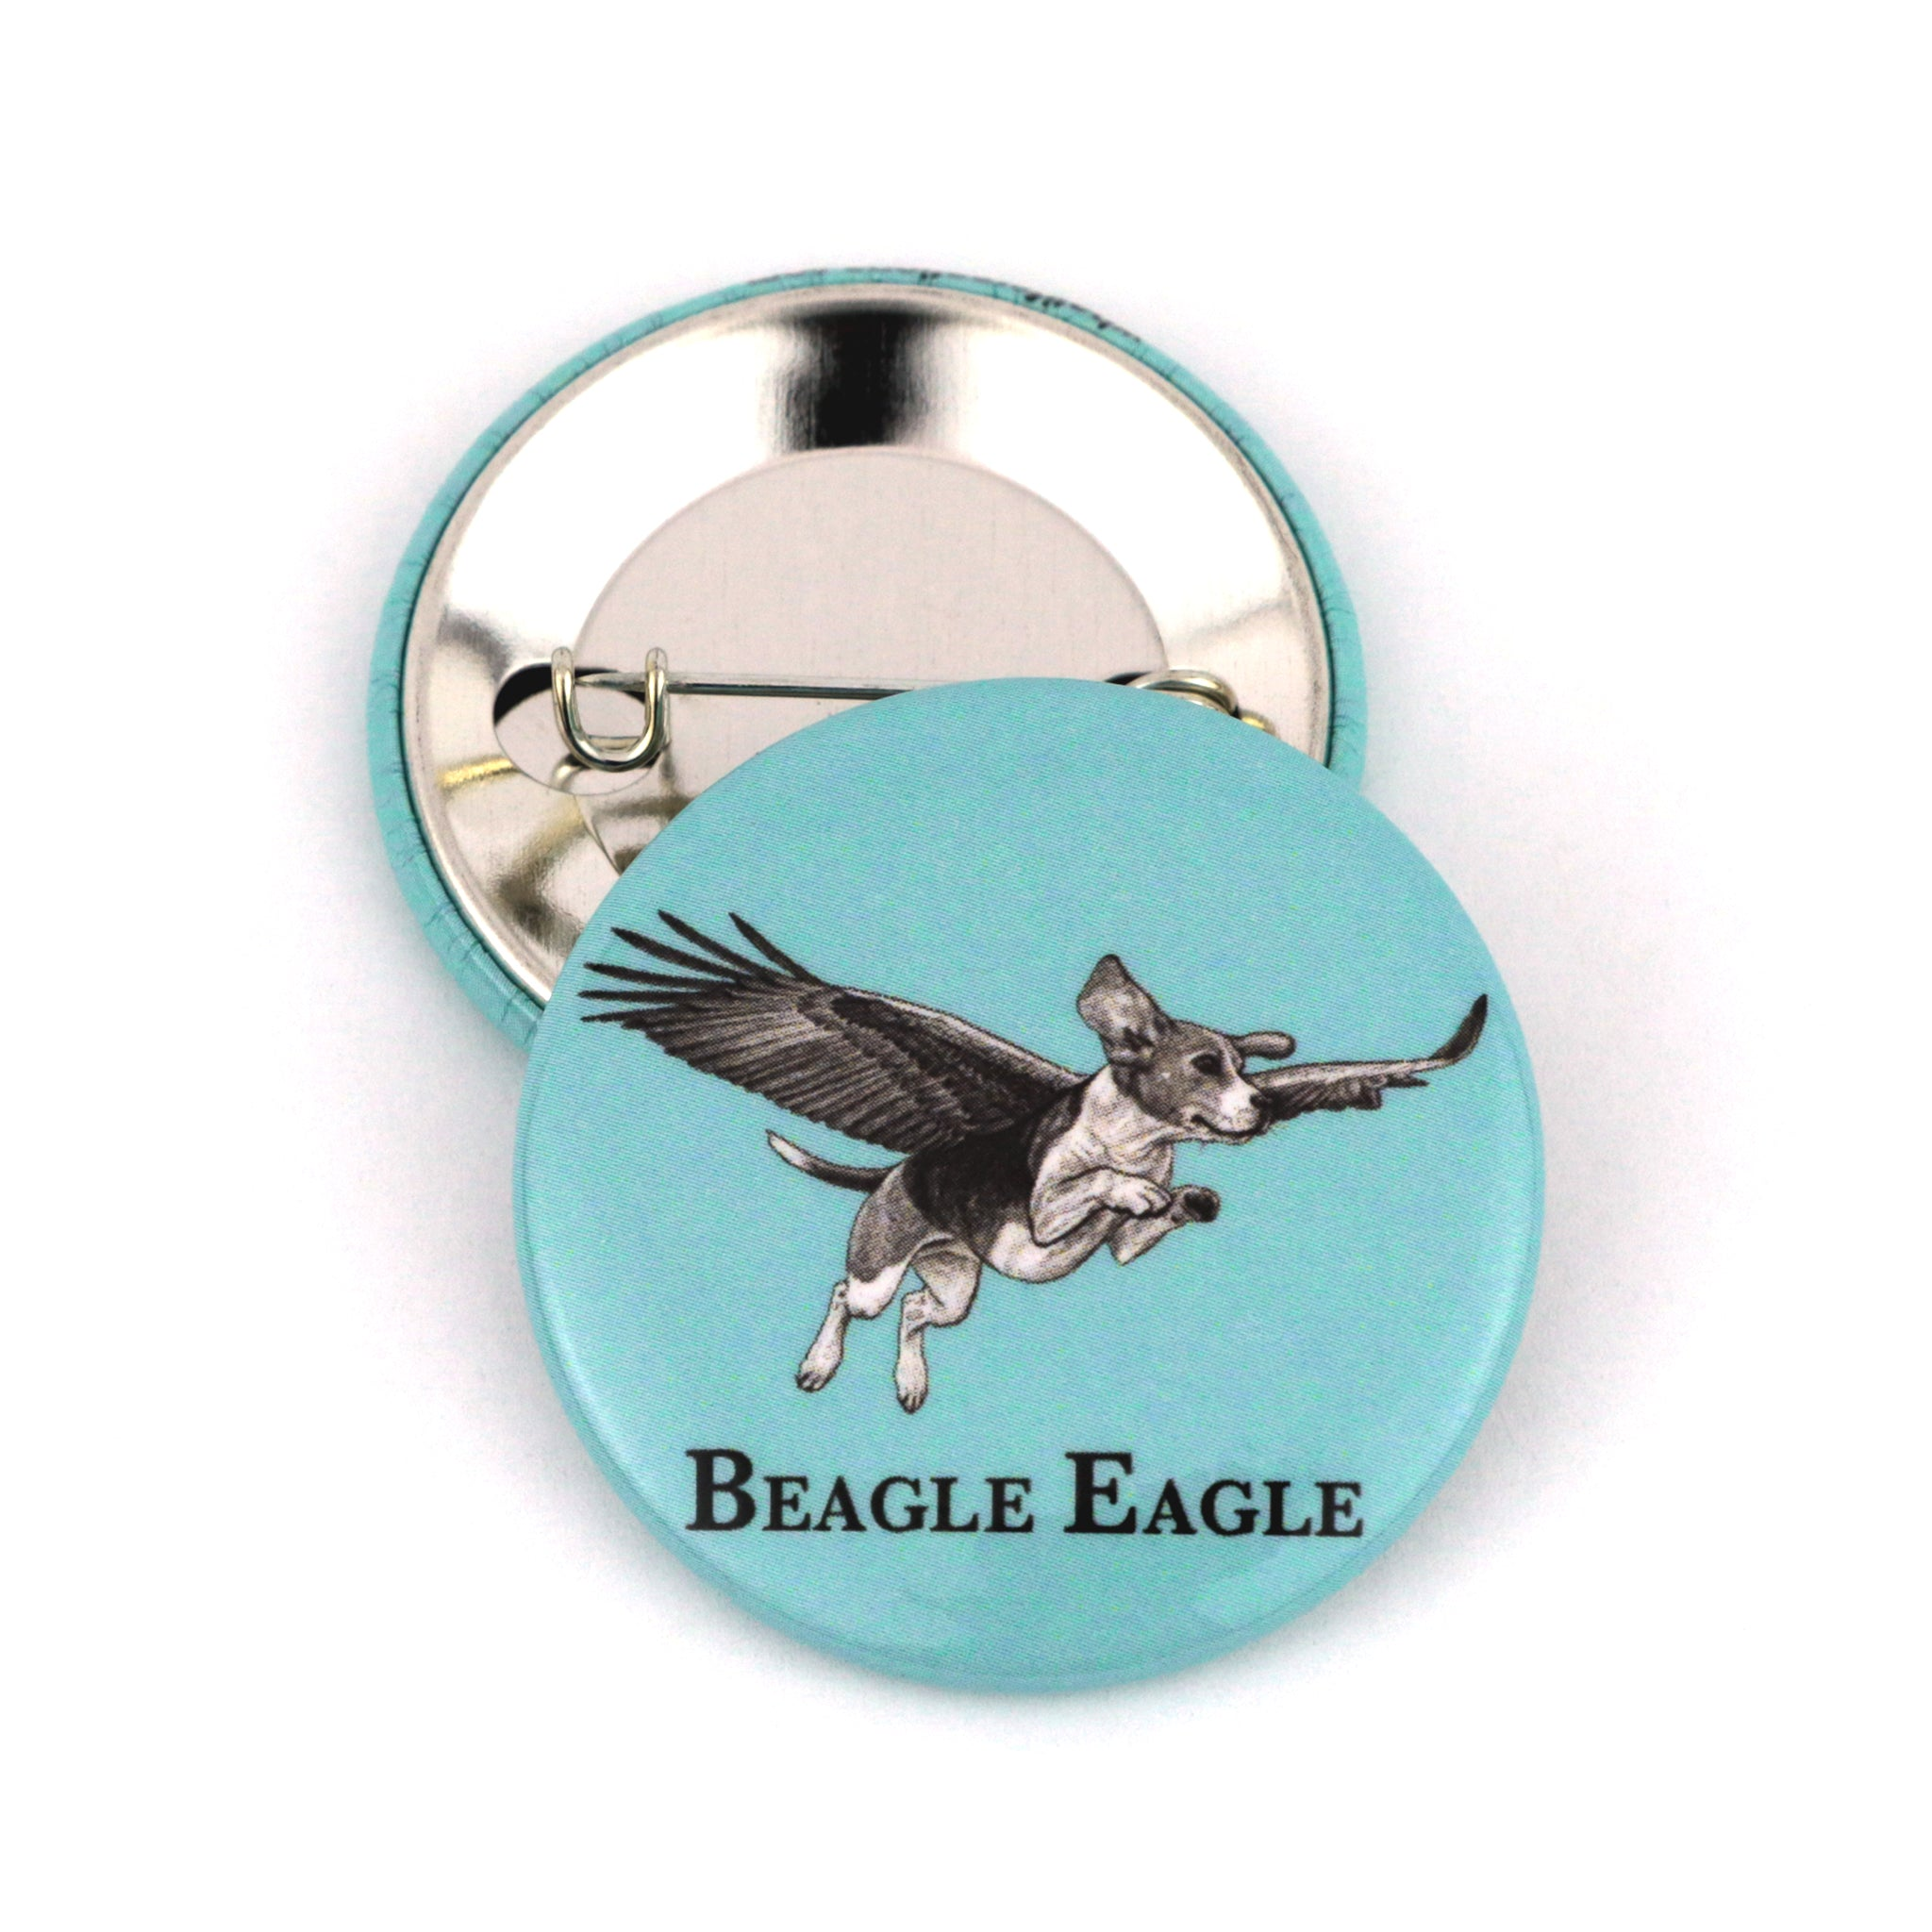 "Beagle Eagle 1.5"" Pinback Button"